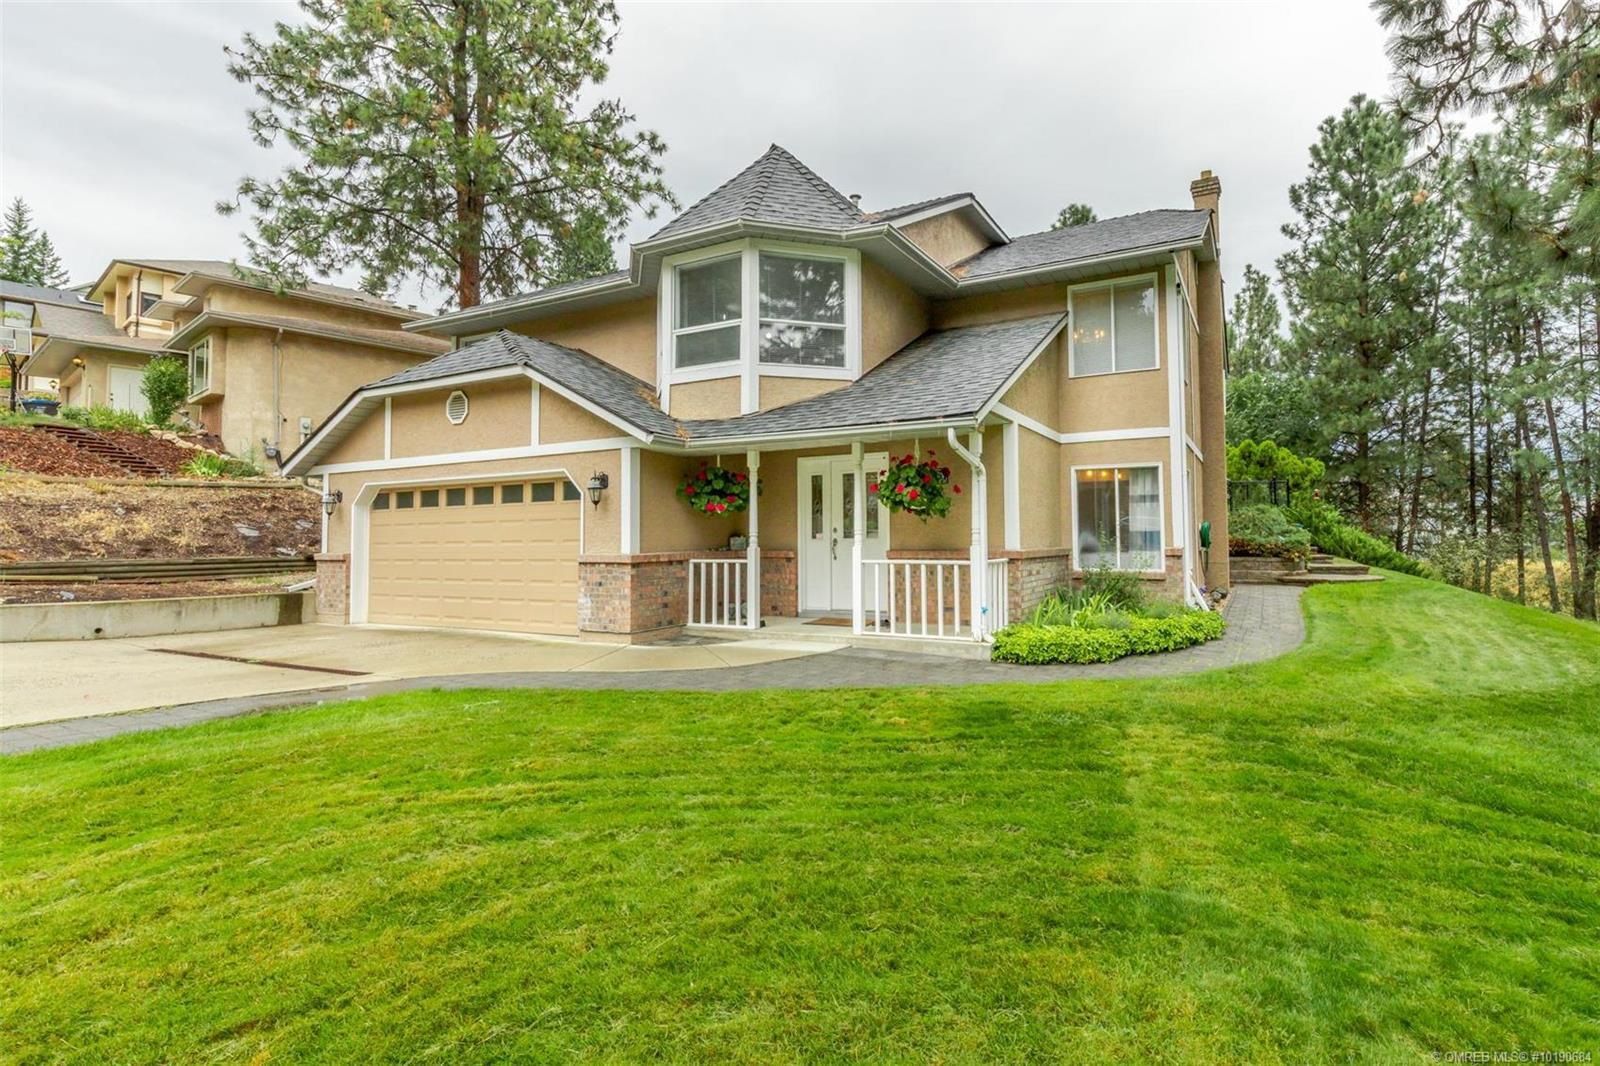 Removed: 795 Cassiar Road, Kelowna, BC - Removed on 2019-09-19 05:45:33